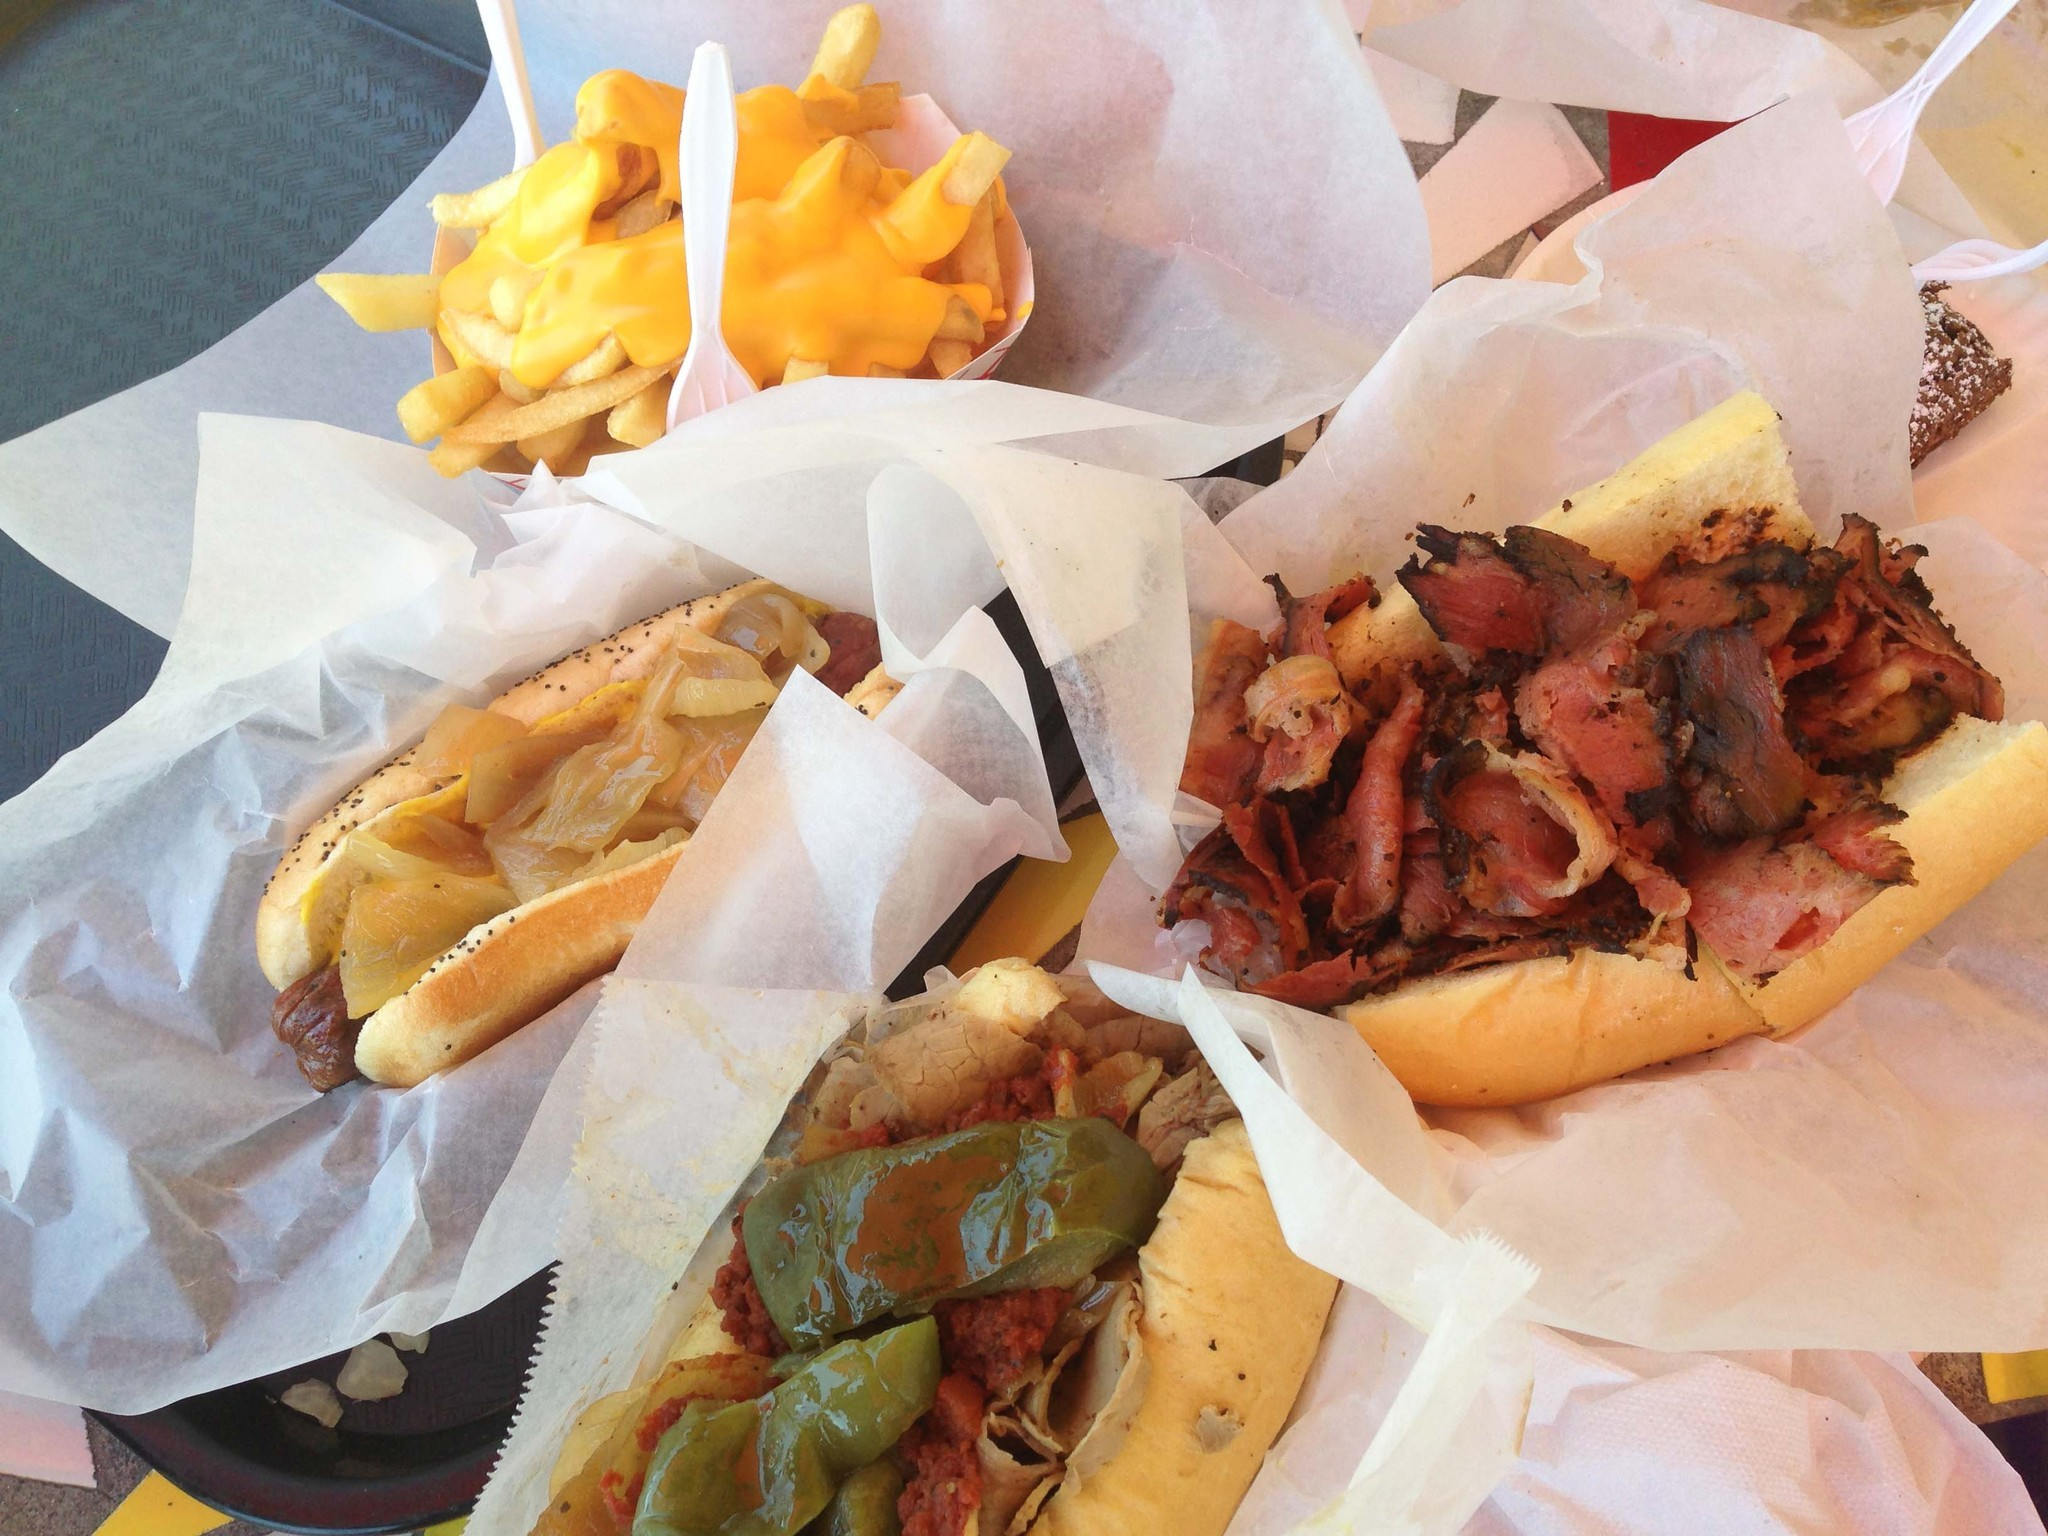 Top Broward restaurants - Hot Dog Heaven